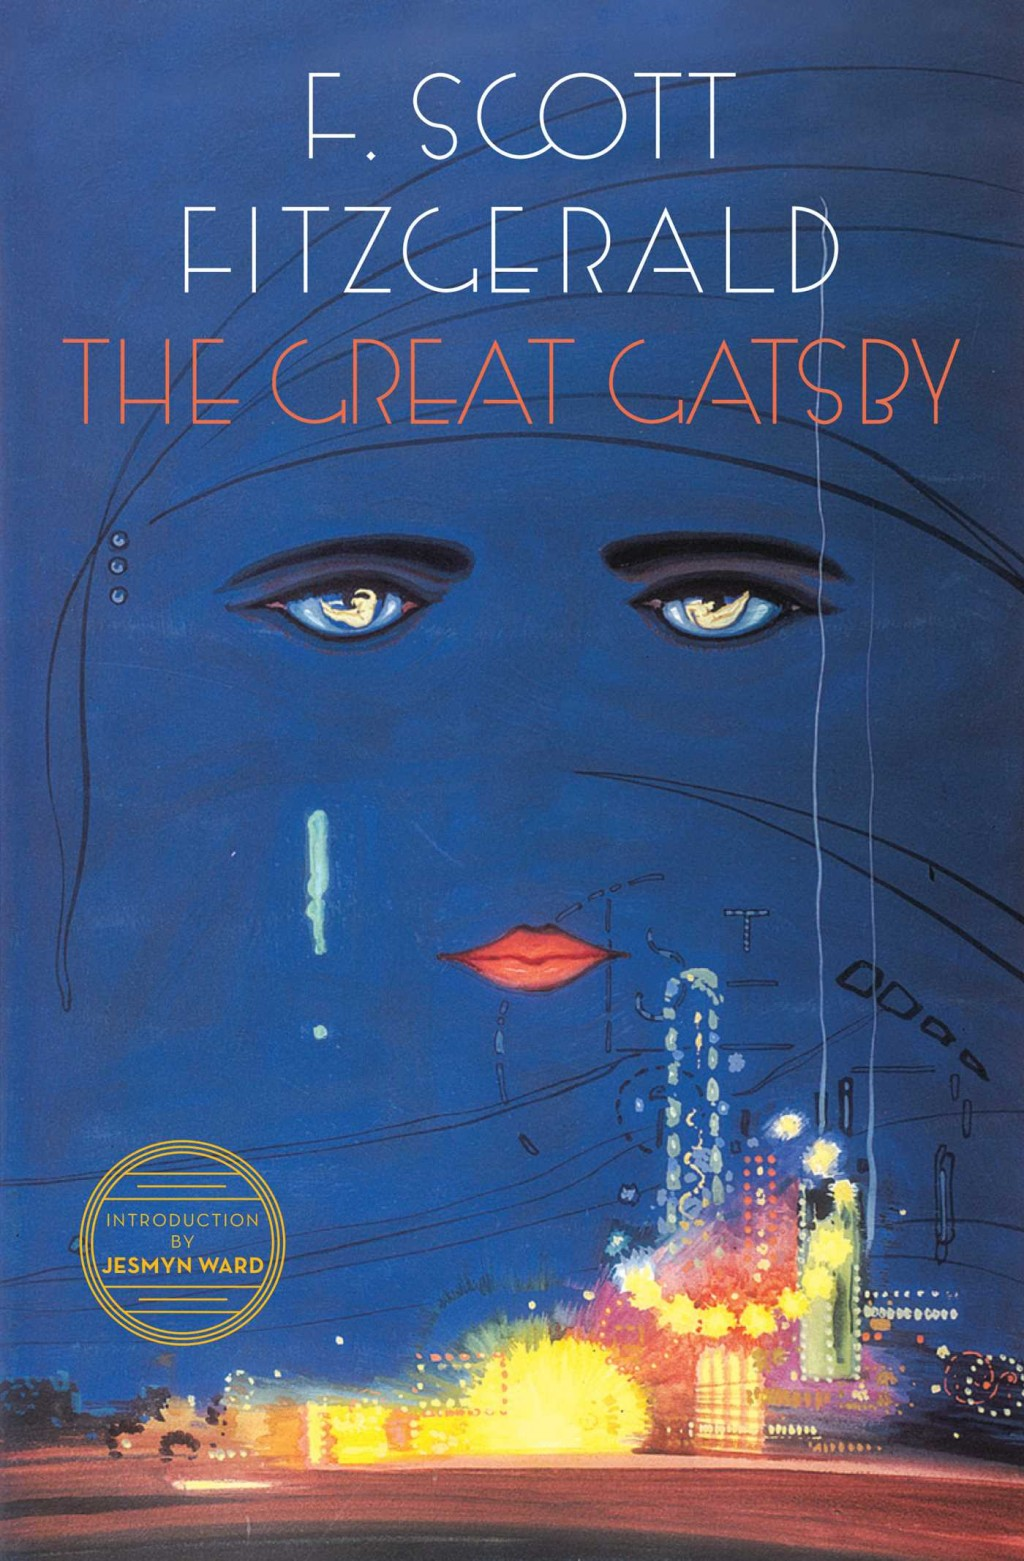 026 Essay Example The Great Gatsby Topics 9780743273565 Hr Exceptional Prompts American Dream Questions And Answers Research Large